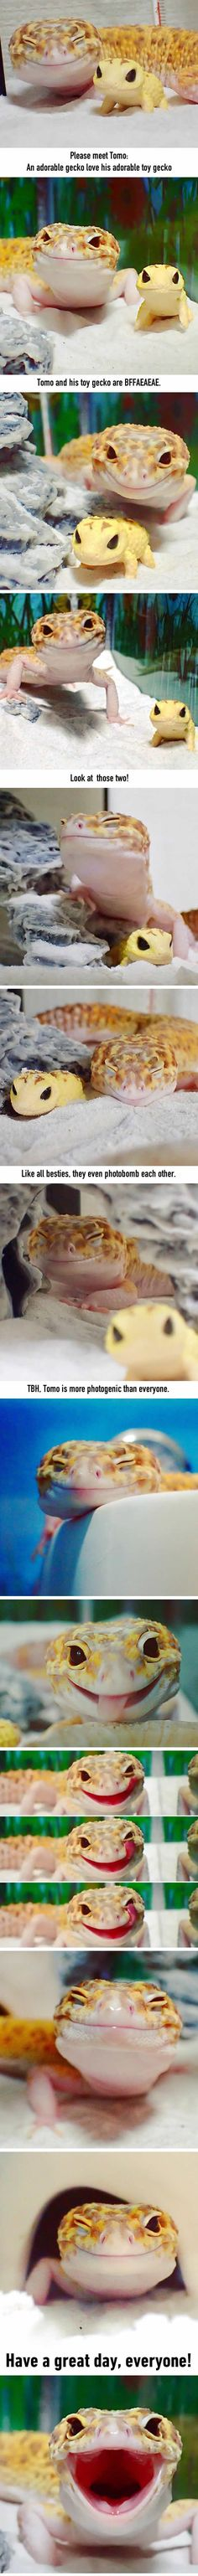 This Gecko Smiling With His Toy Gecko Is The Purest Thing You'll See Today - Imgur